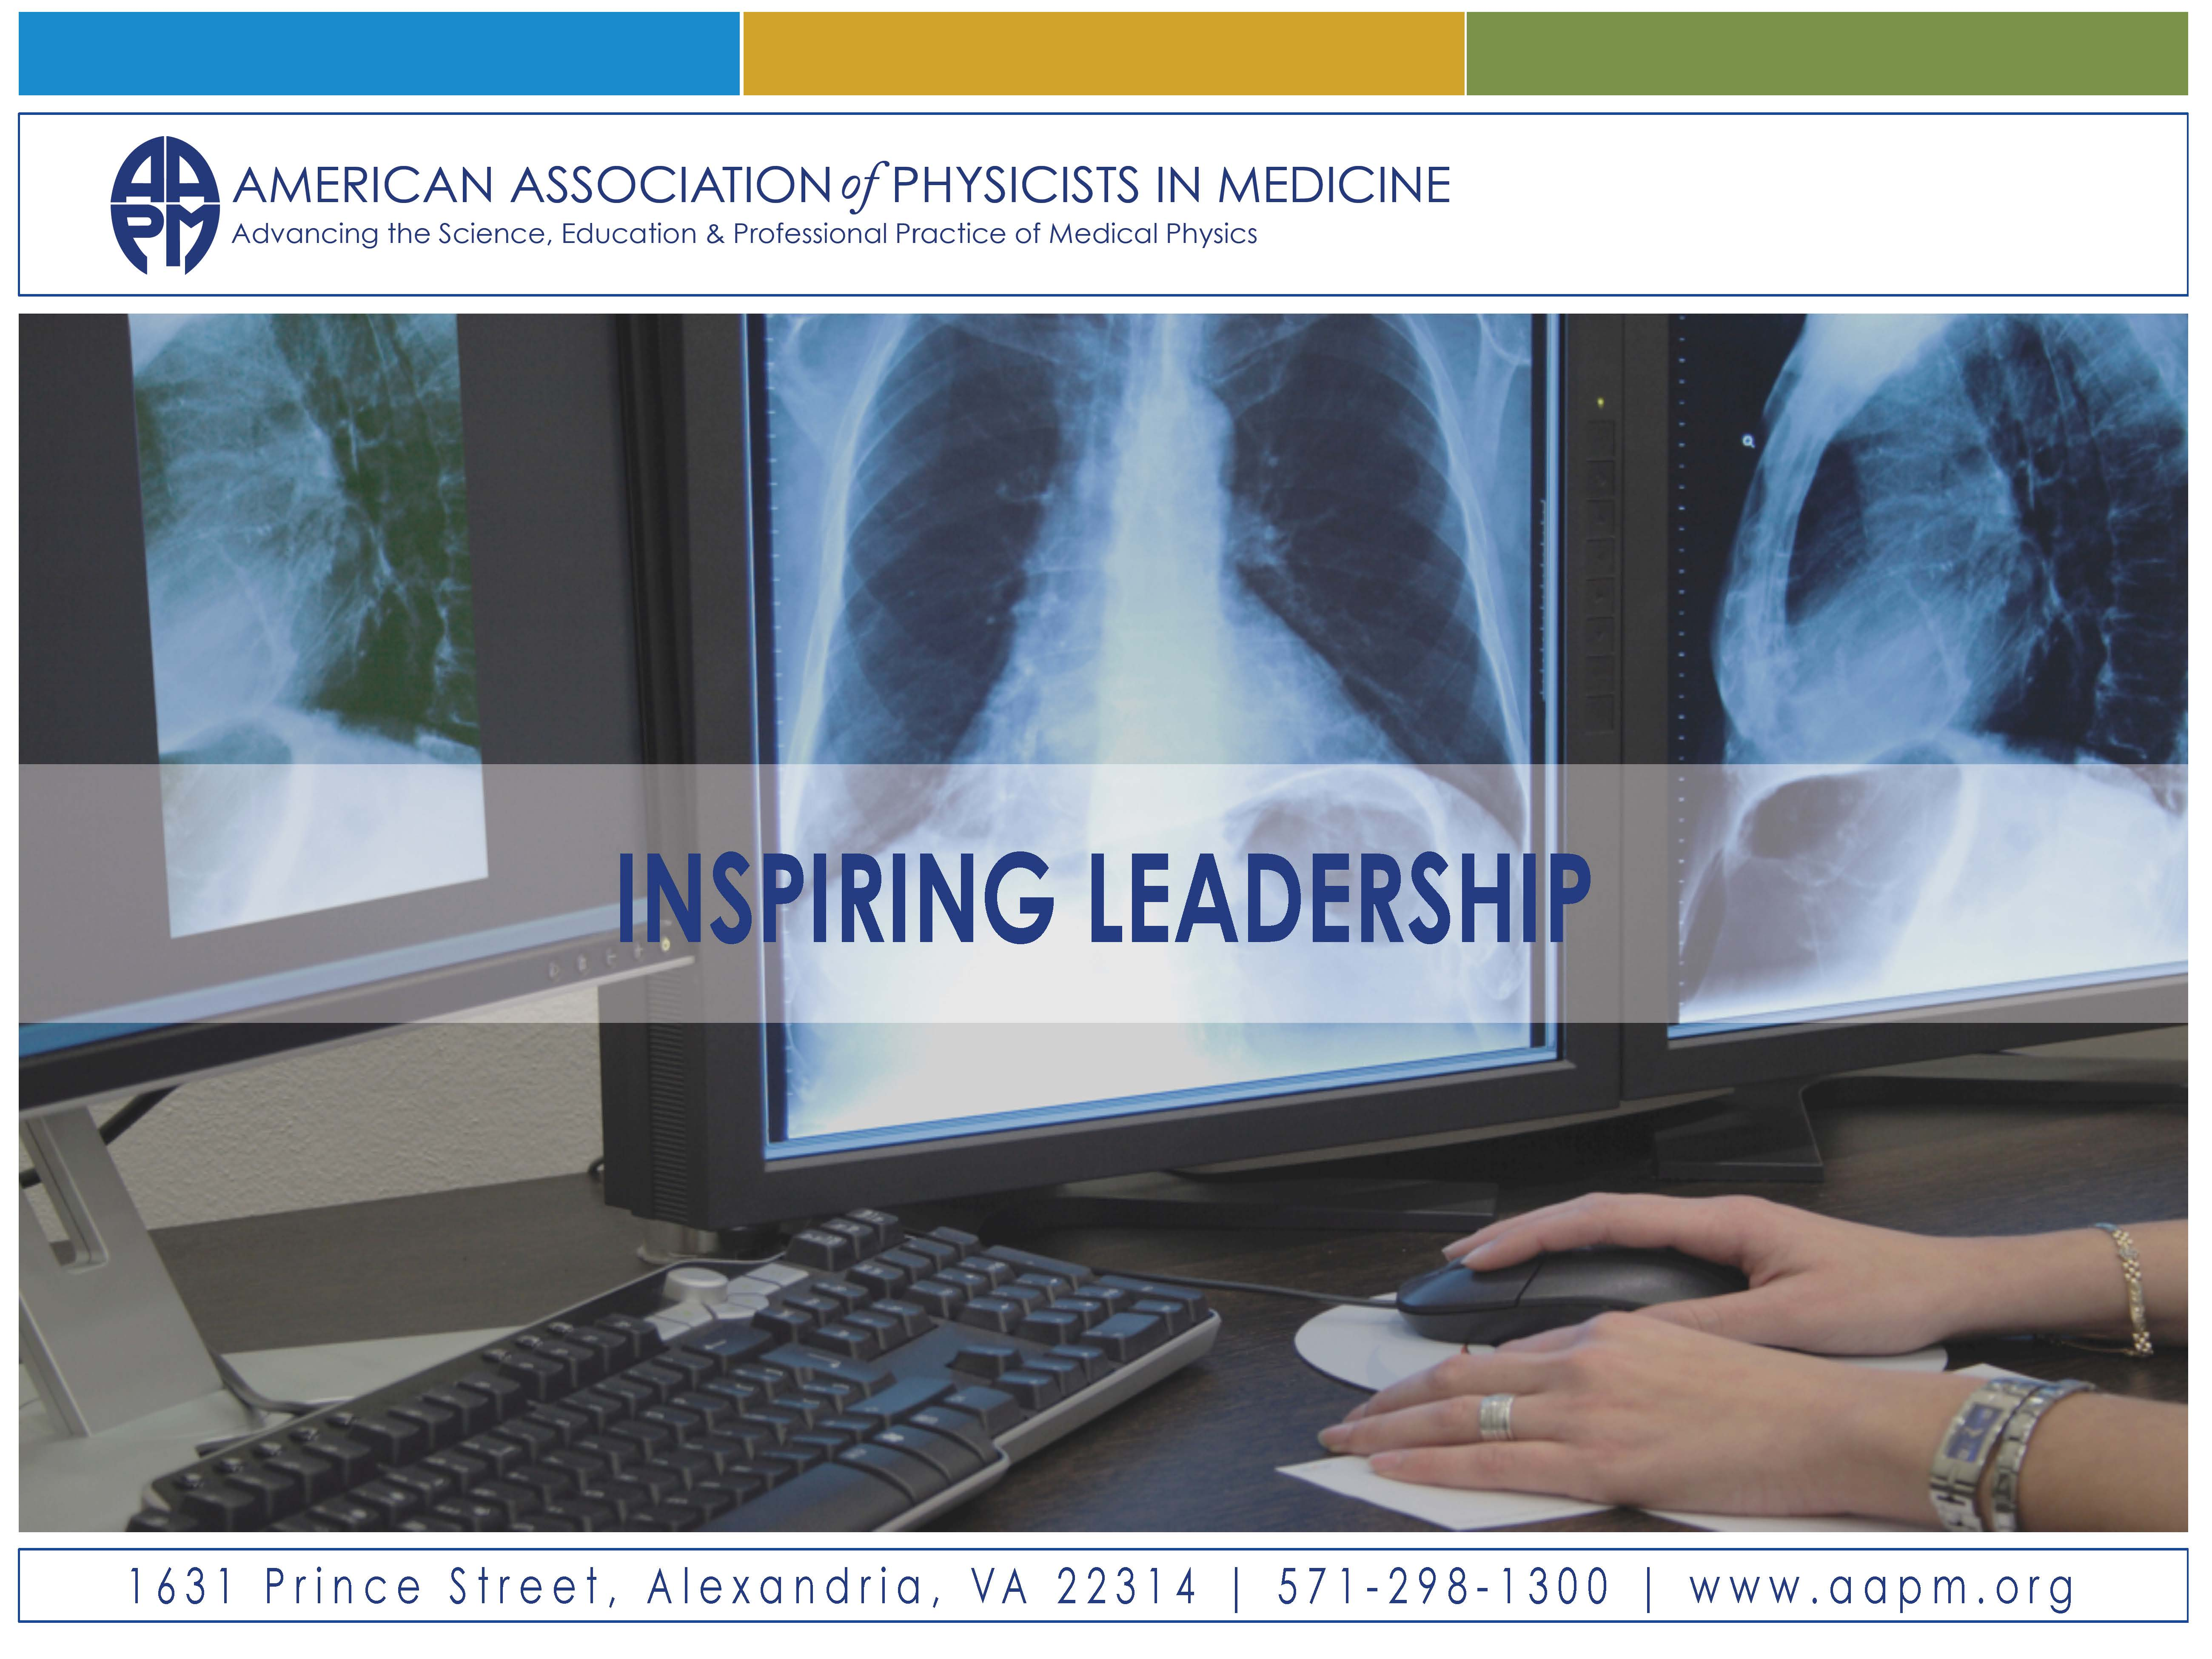 Virtual Library Aapm The American Association Of Physicists In Media Panels Home Enhancement Systems Mo C Brb Inspiring Leadership Medical Physics Adding Value Industry Presented By Kolleen Kennedy Ms Varian Vlid 11331